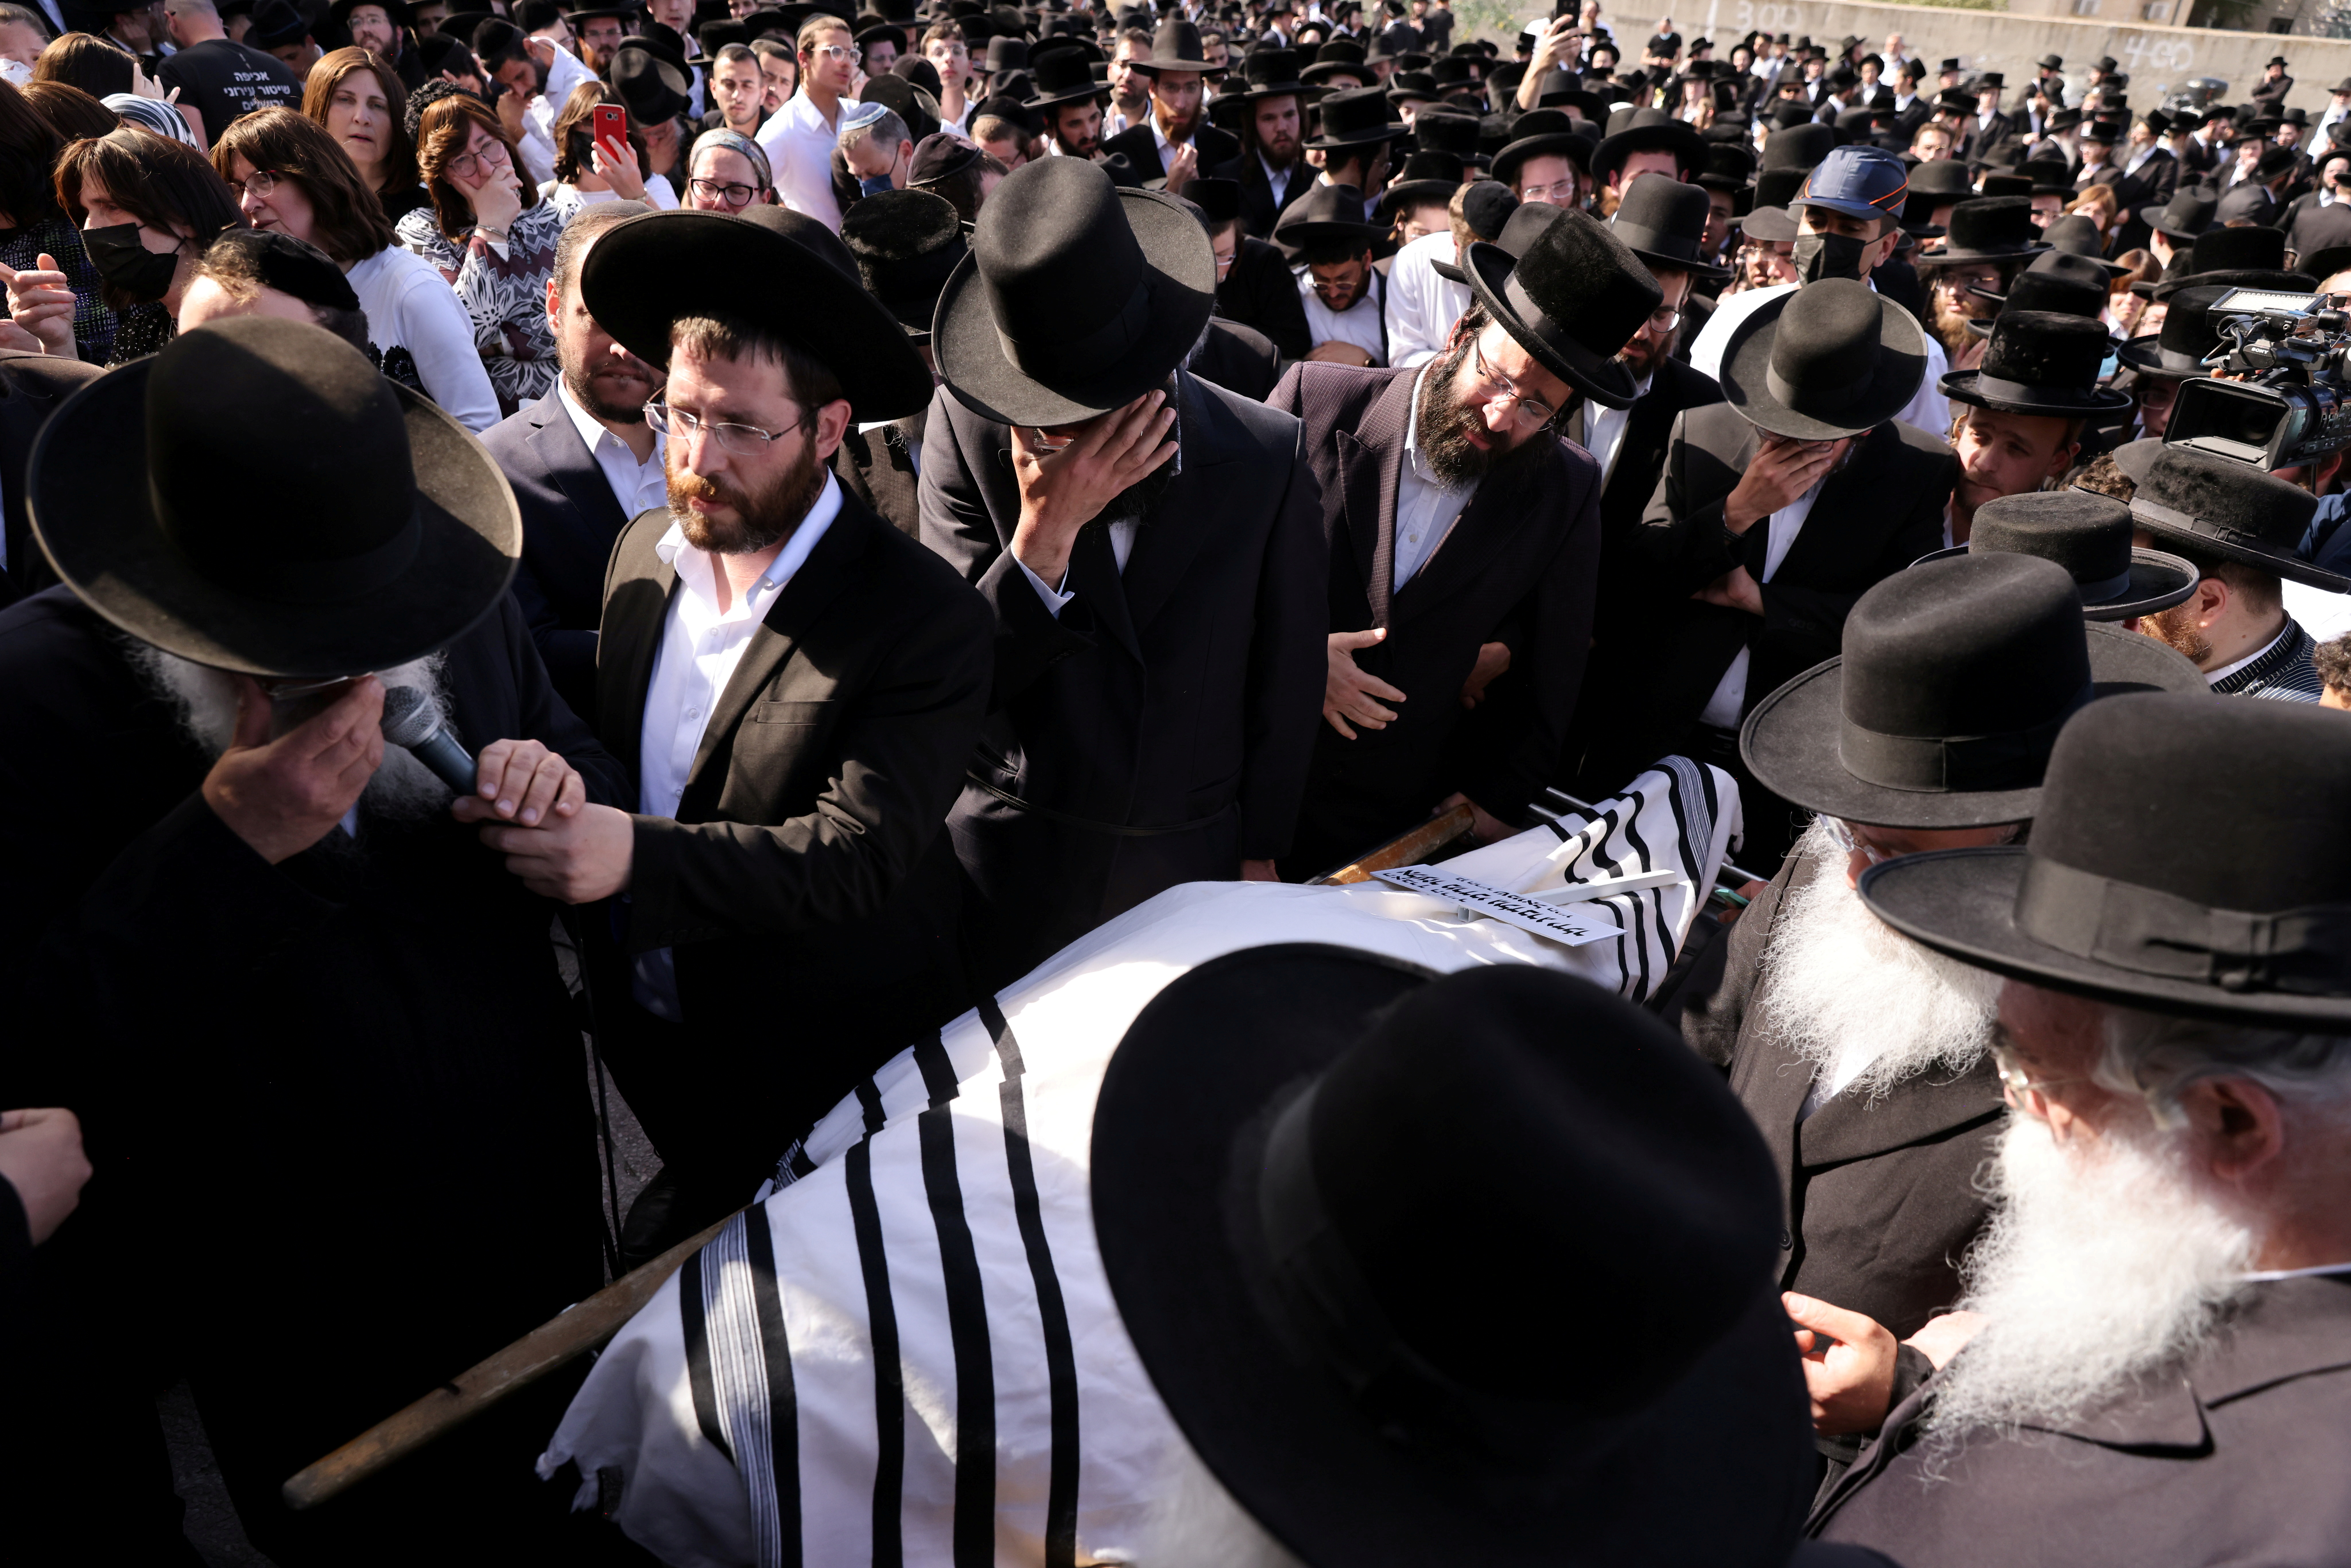 Ultra-Orthodox Jewish men react as they take part in a funeral for Rabbi Elazar Goldberg after he died during Lag B'Omer commemorations, in Jerusalem April 30, 2021. REUTERS/Ronen Zvulun/File Photo